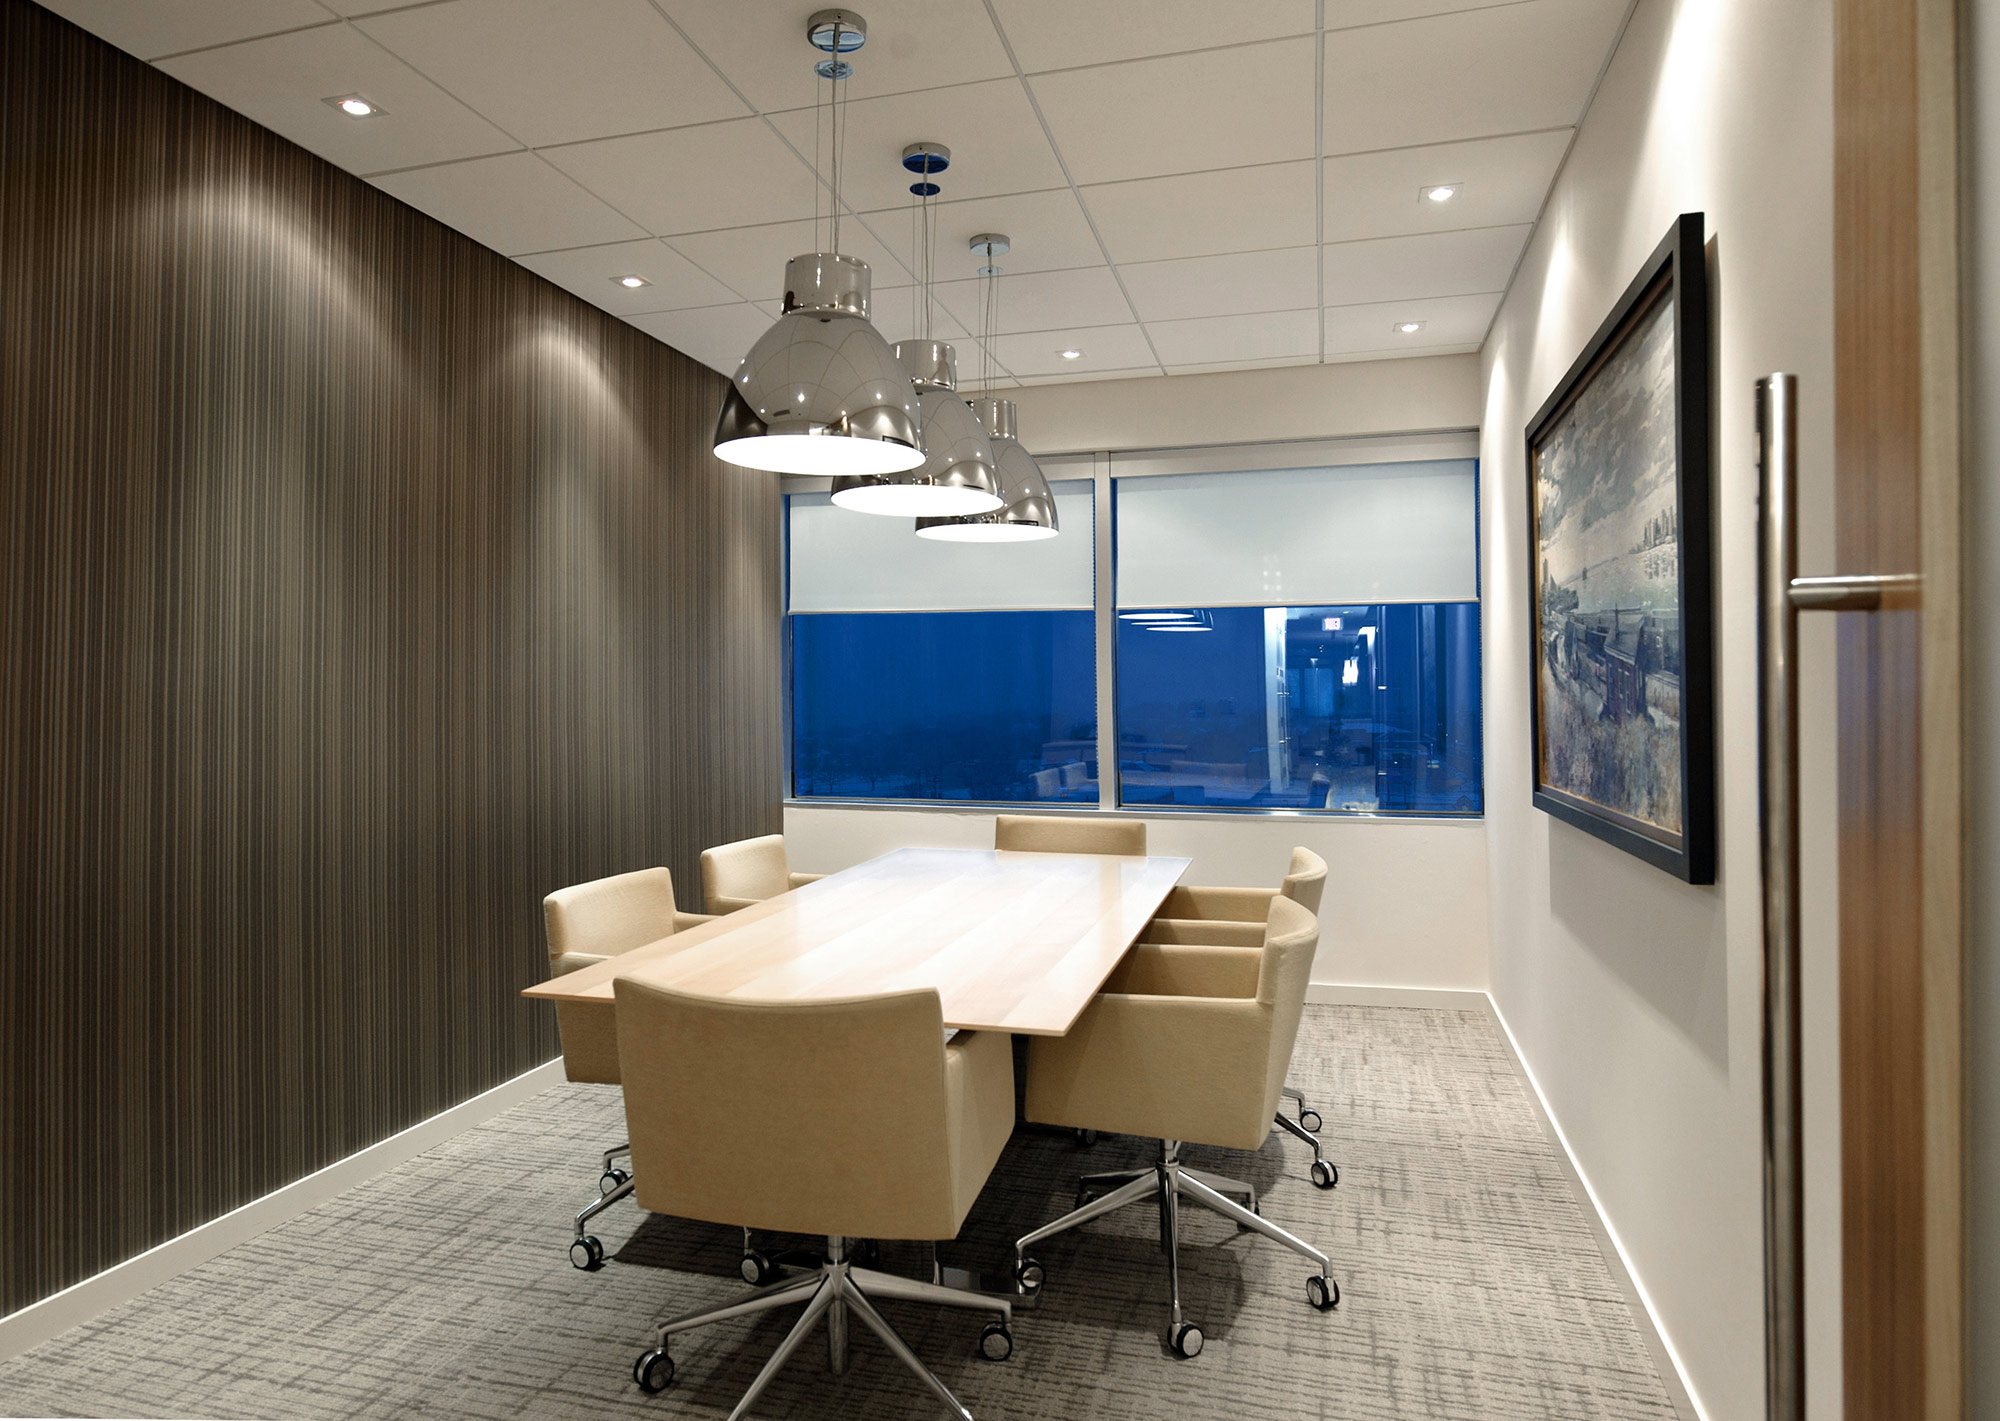 interior-design-legal-office-boardroom.jpg